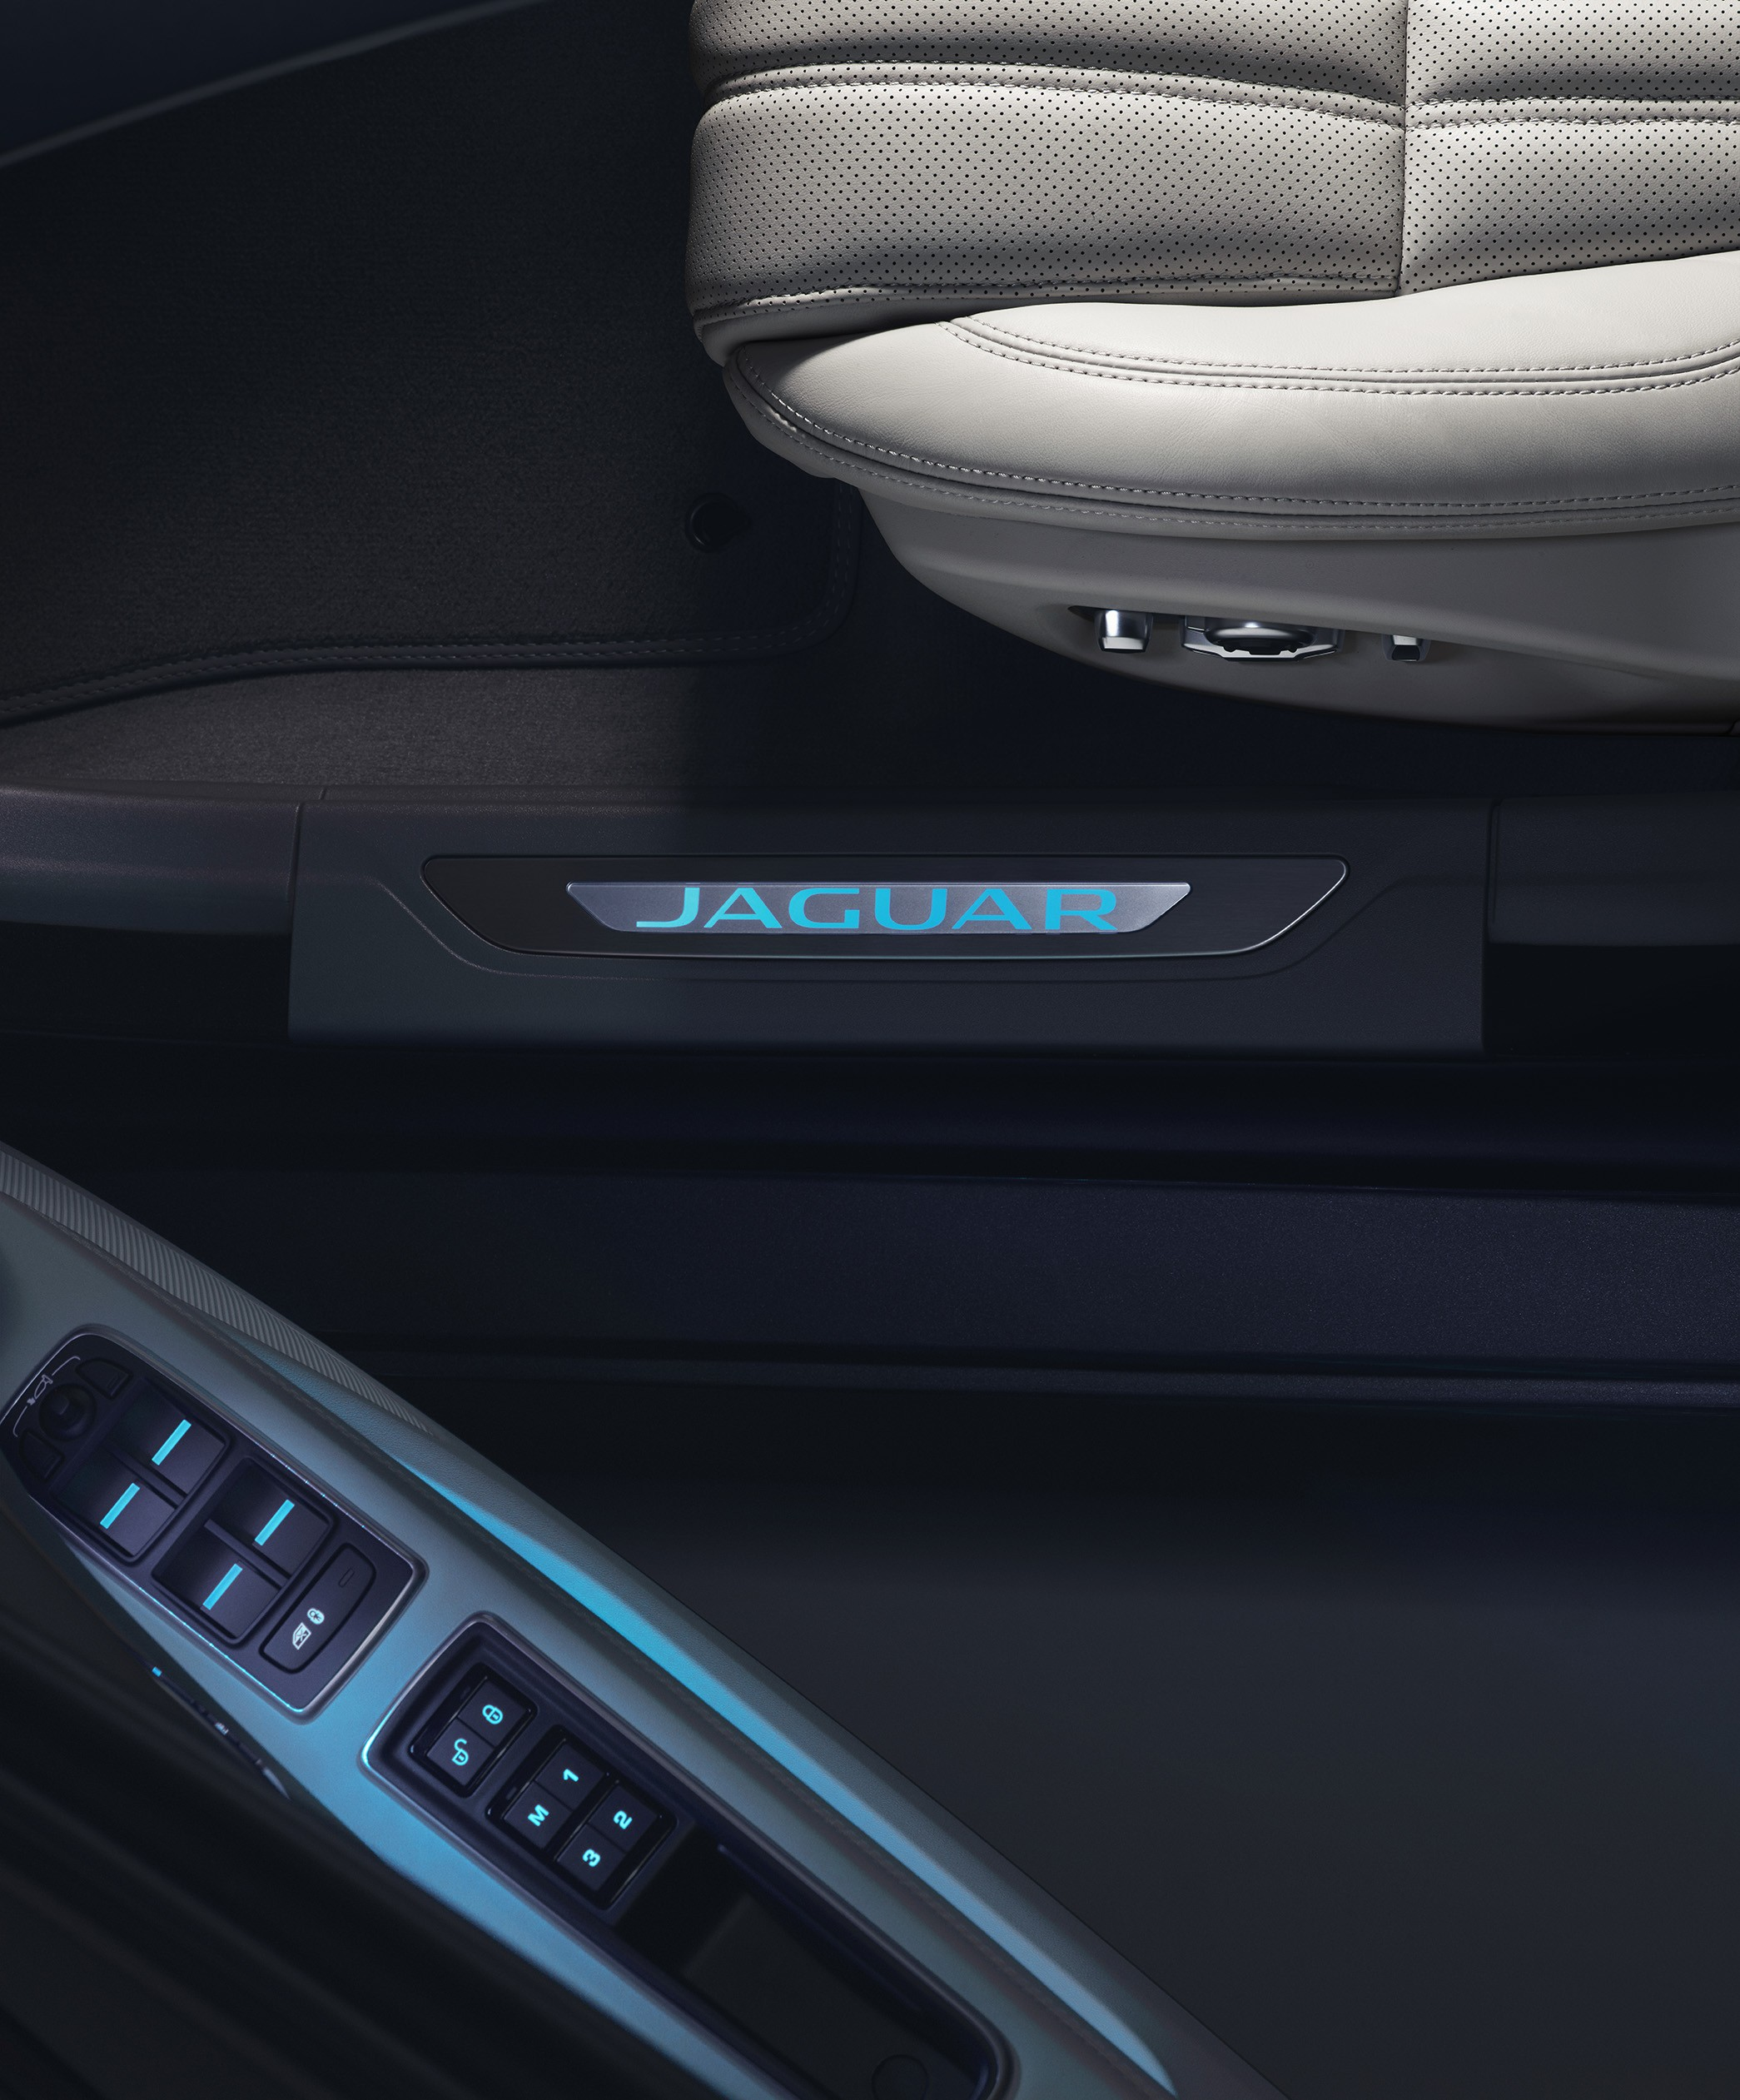 Jaguar Xf Sportbrake: 2018 Jaguar XF Sportbrake Coming To The U.S. With S/C V6